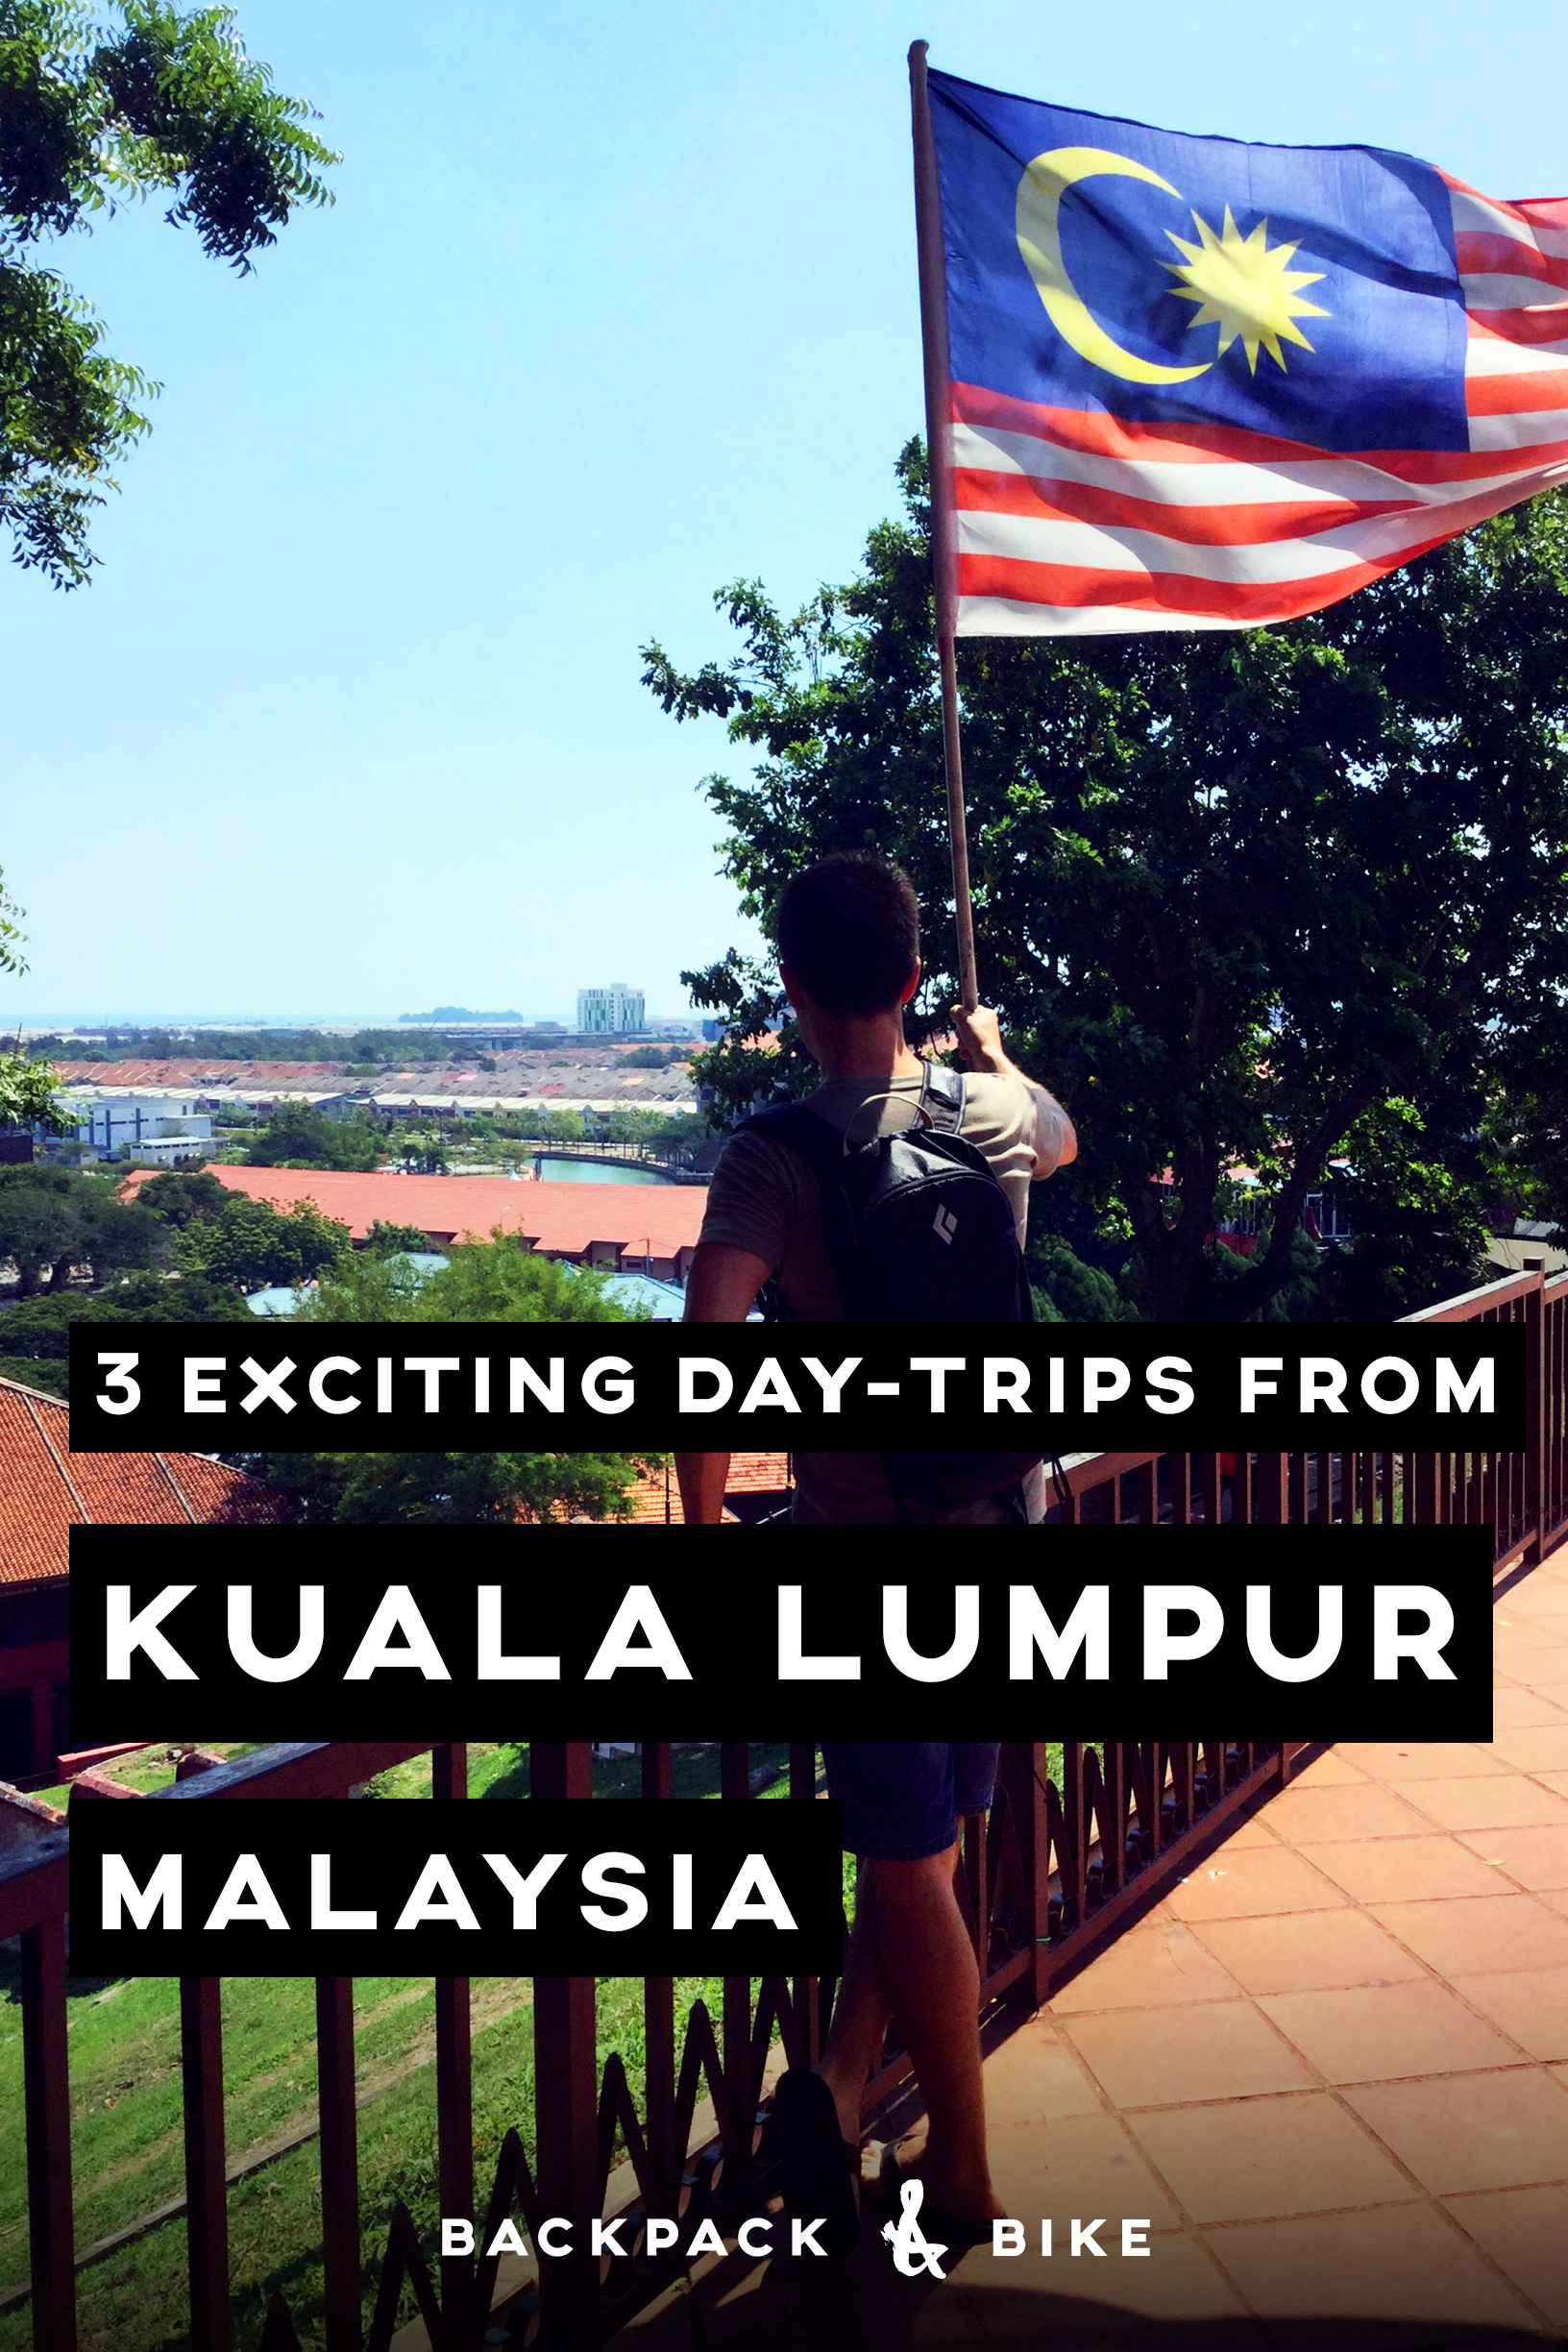 Though Kuala Lumpur is an exciting place, make sure not to miss it's wonderful neighbours. Here are 3 day trips you can take from KL to get away for a day.